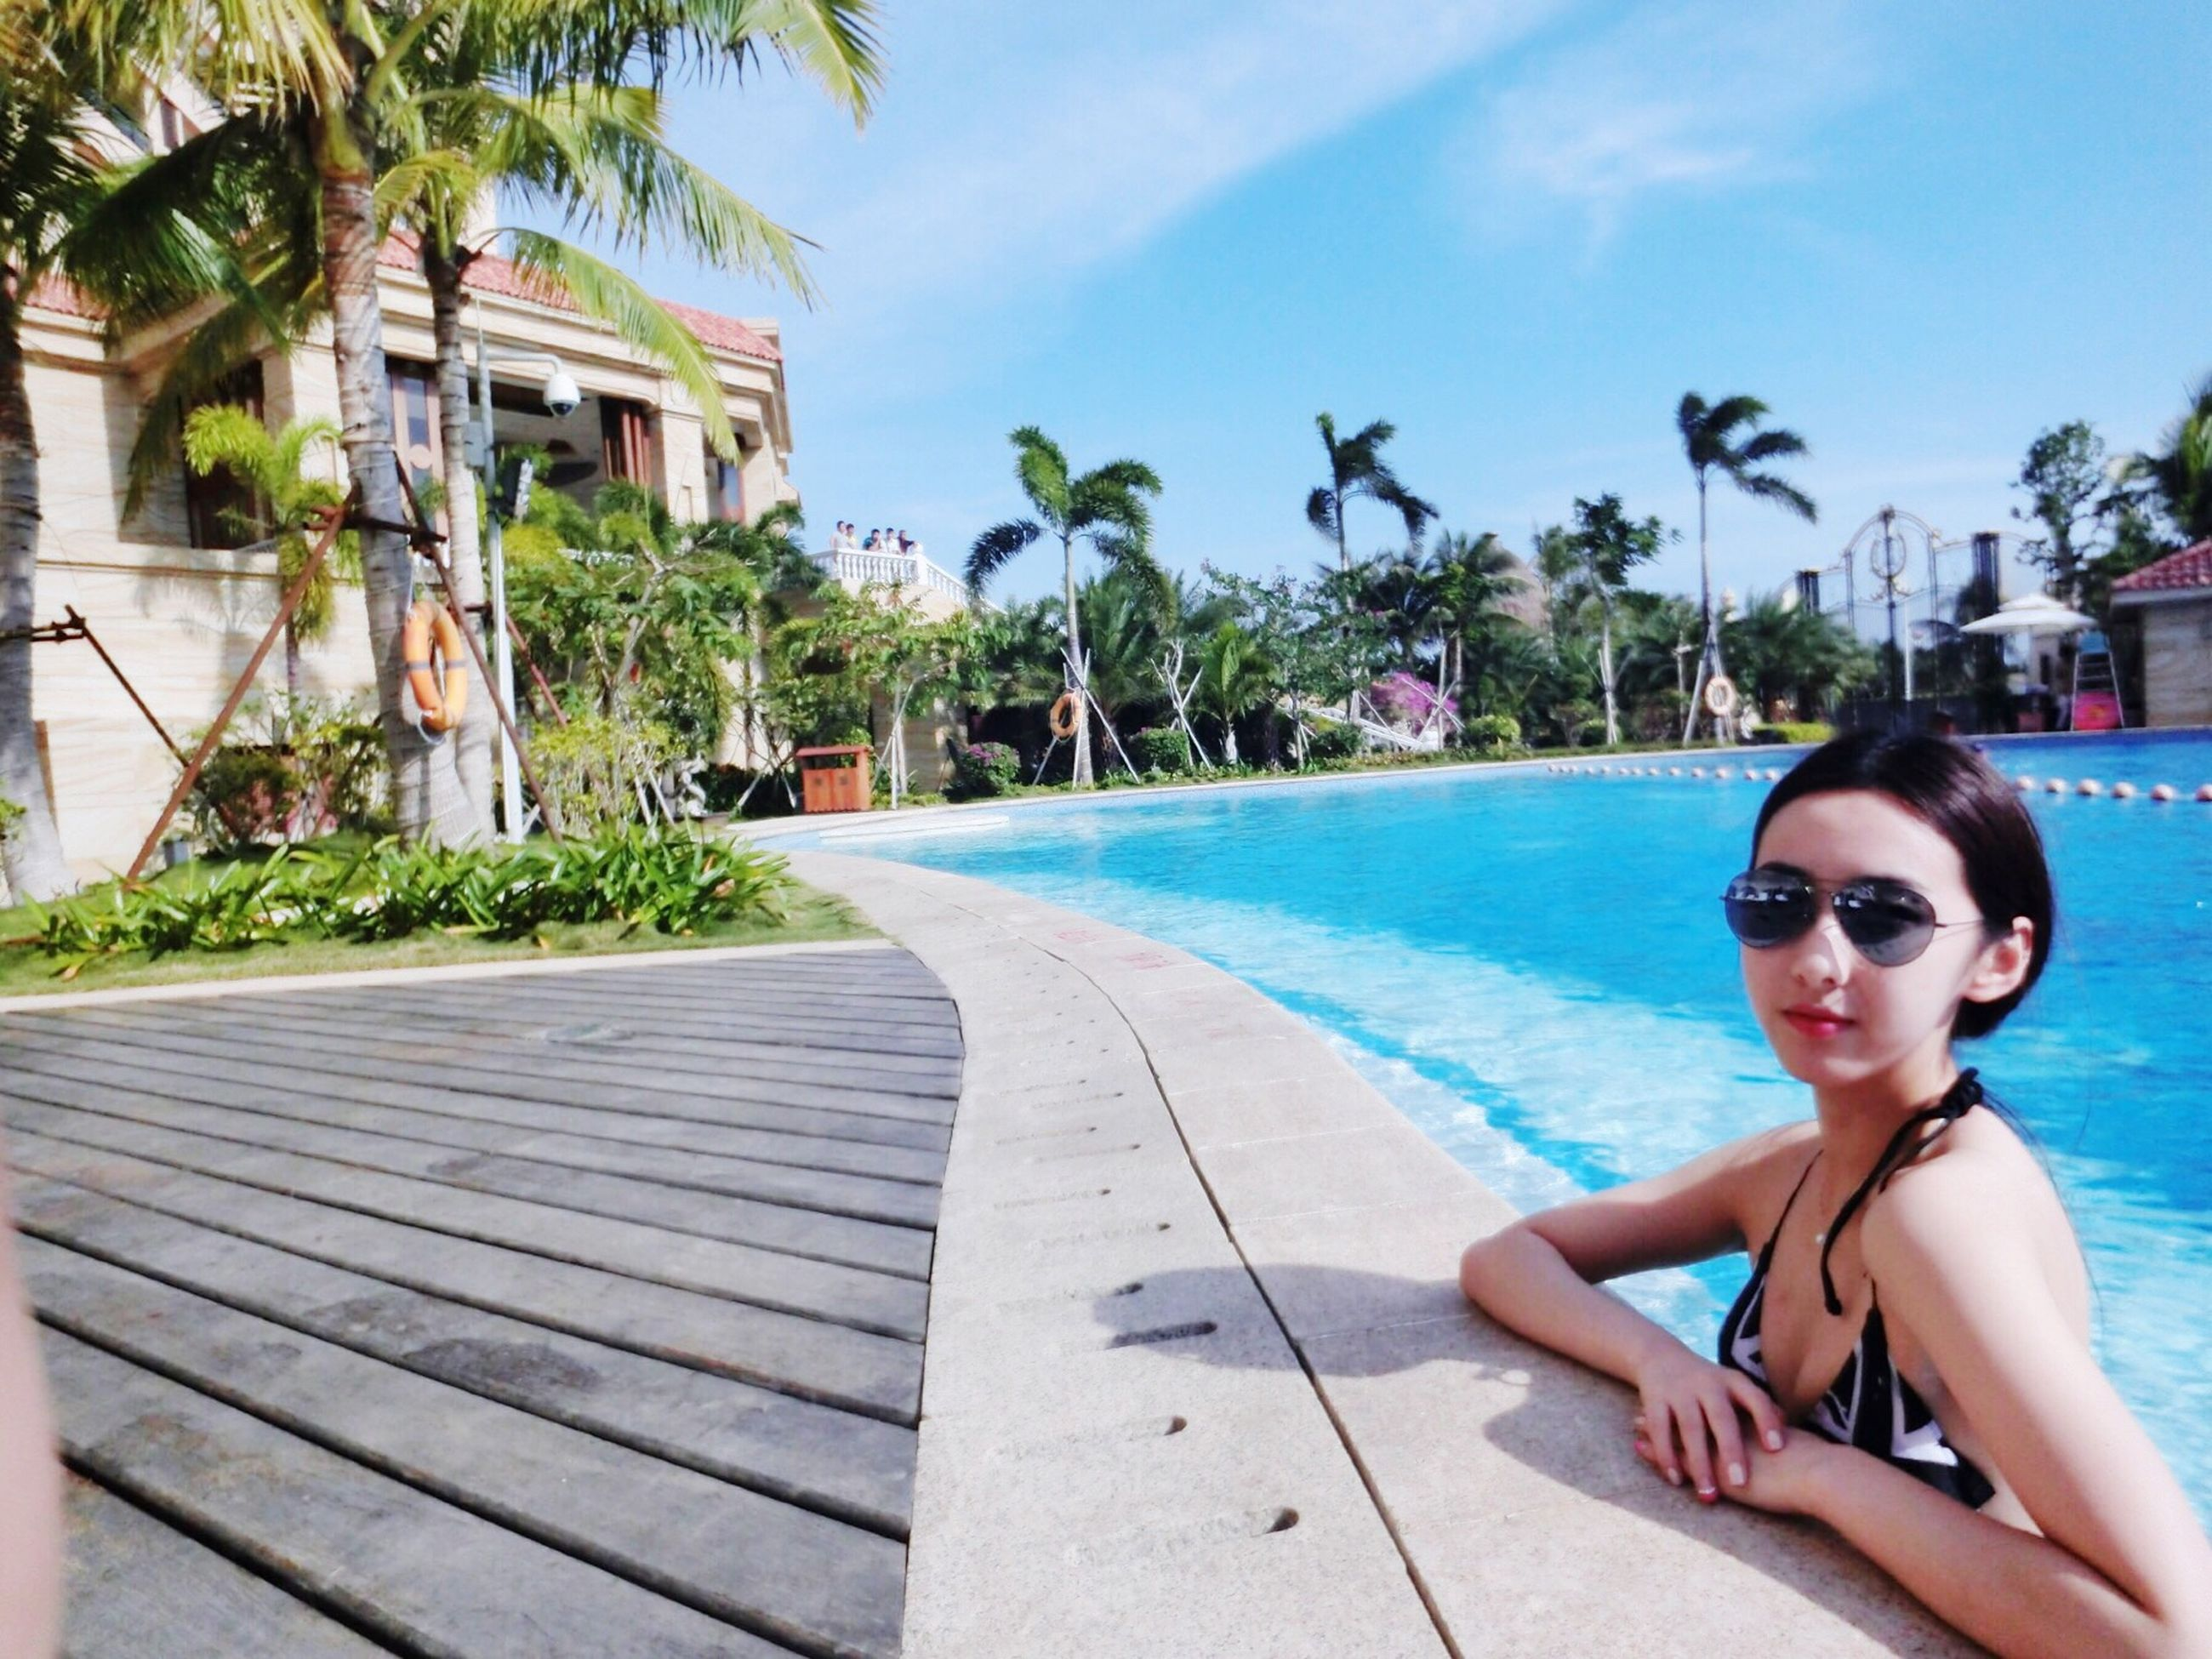 lifestyles, leisure activity, beach, person, palm tree, sea, sky, sunlight, water, swimming pool, young adult, blue, tree, young women, day, childhood, outdoors, sunglasses